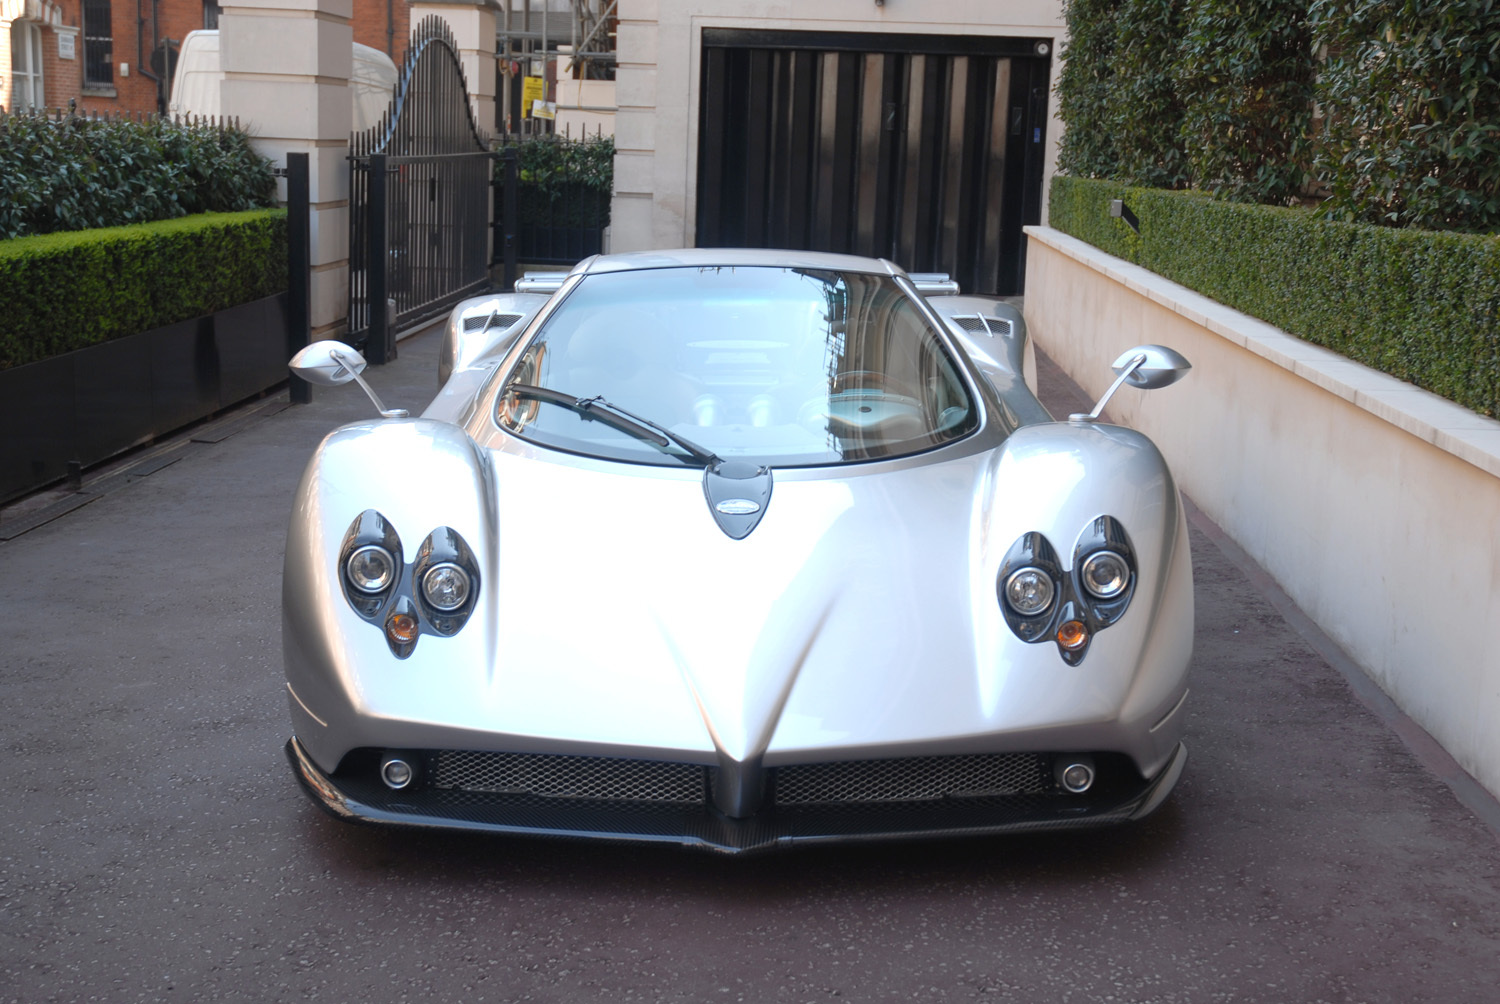 2008 Pagani Zonda F Roadster One Of One Fuel Engine Buy